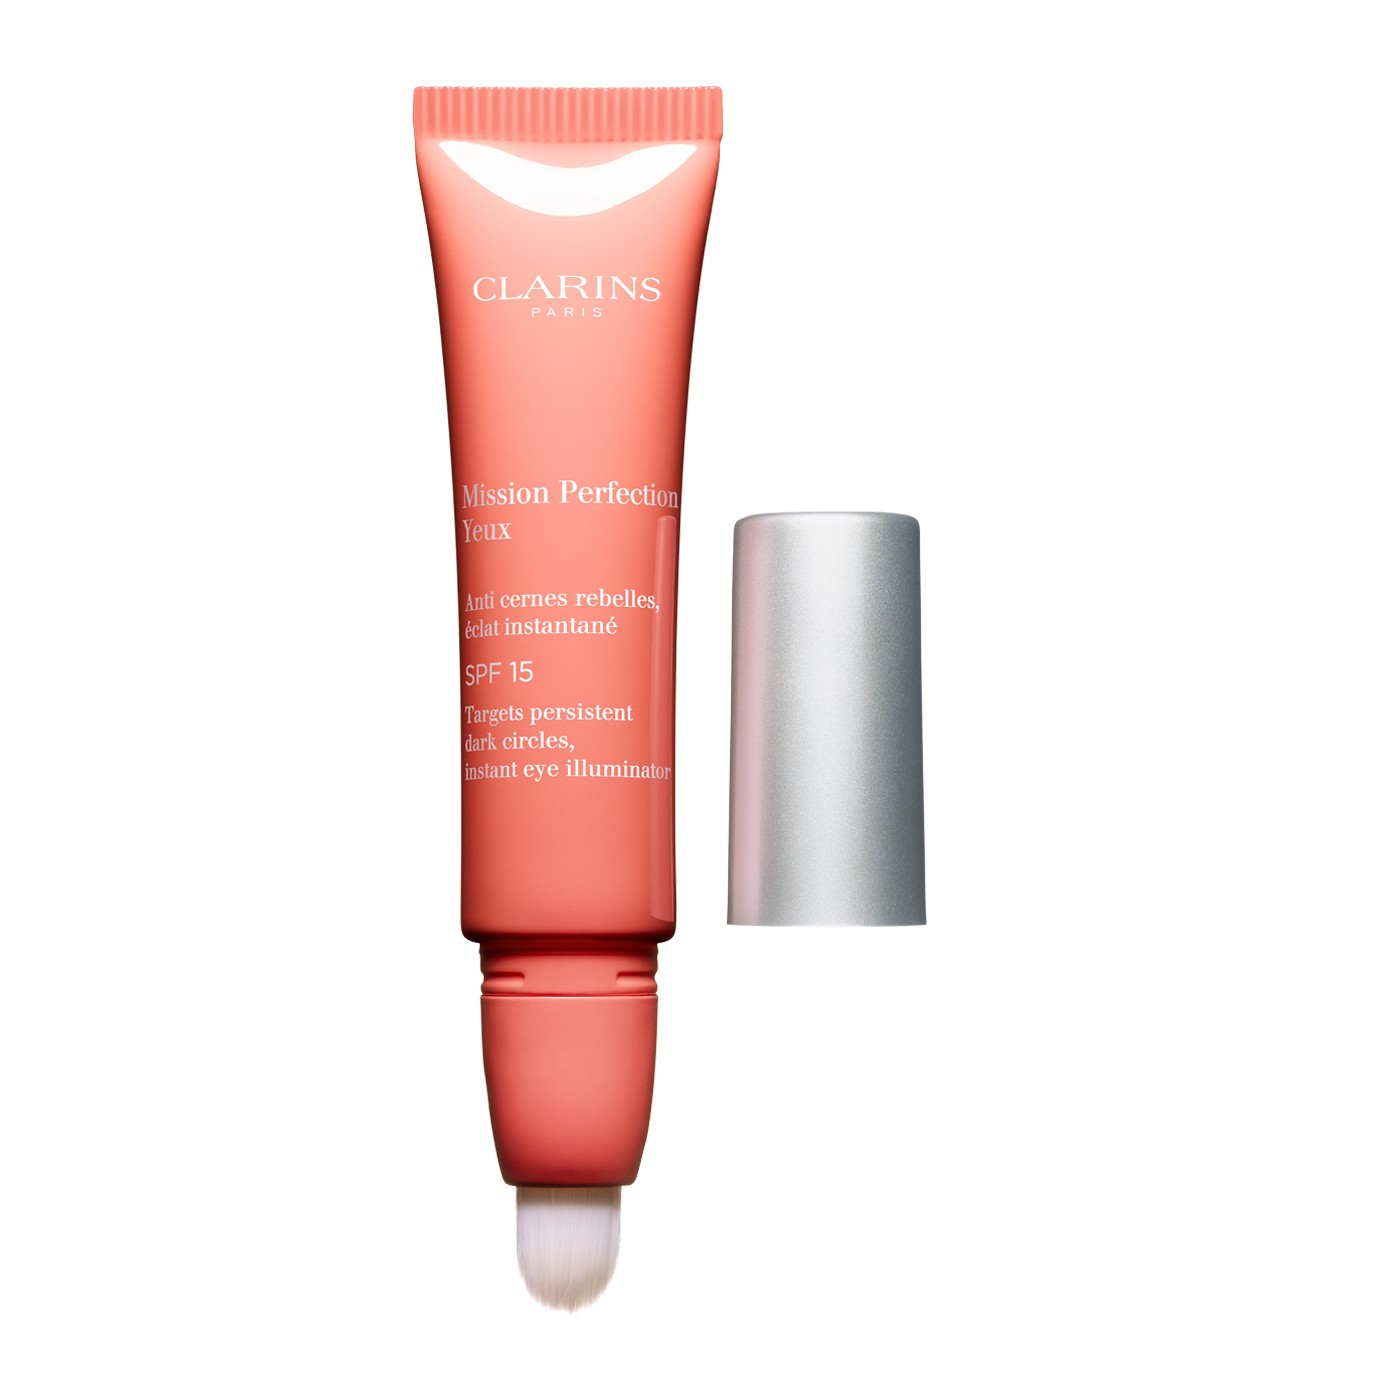 Mission Perfection Yeux SPF15 15 ml